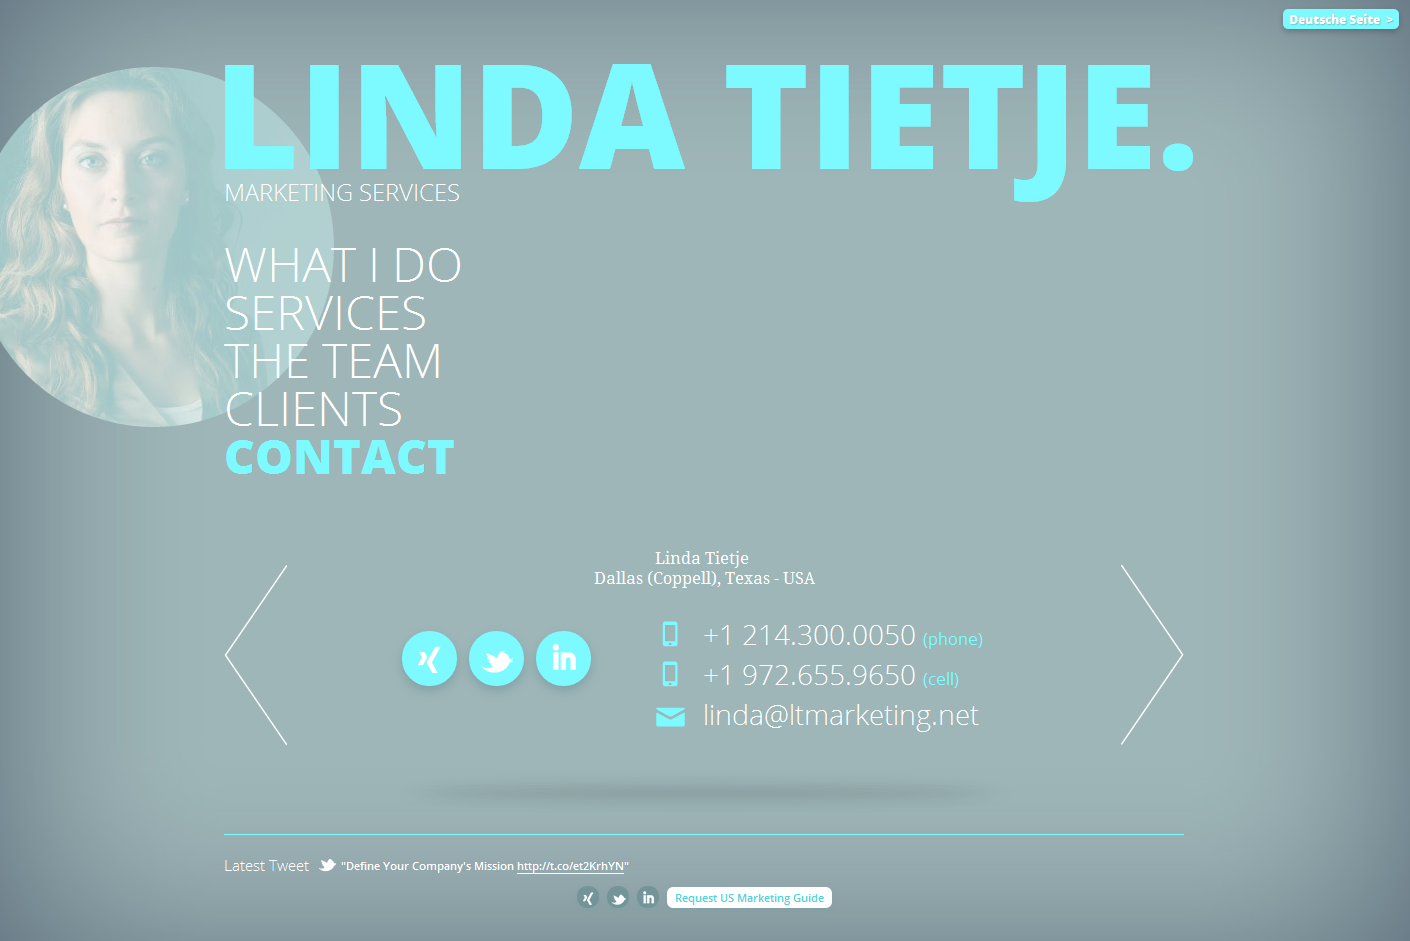 Linda Tietje. Marketing Services. Website Screenshot